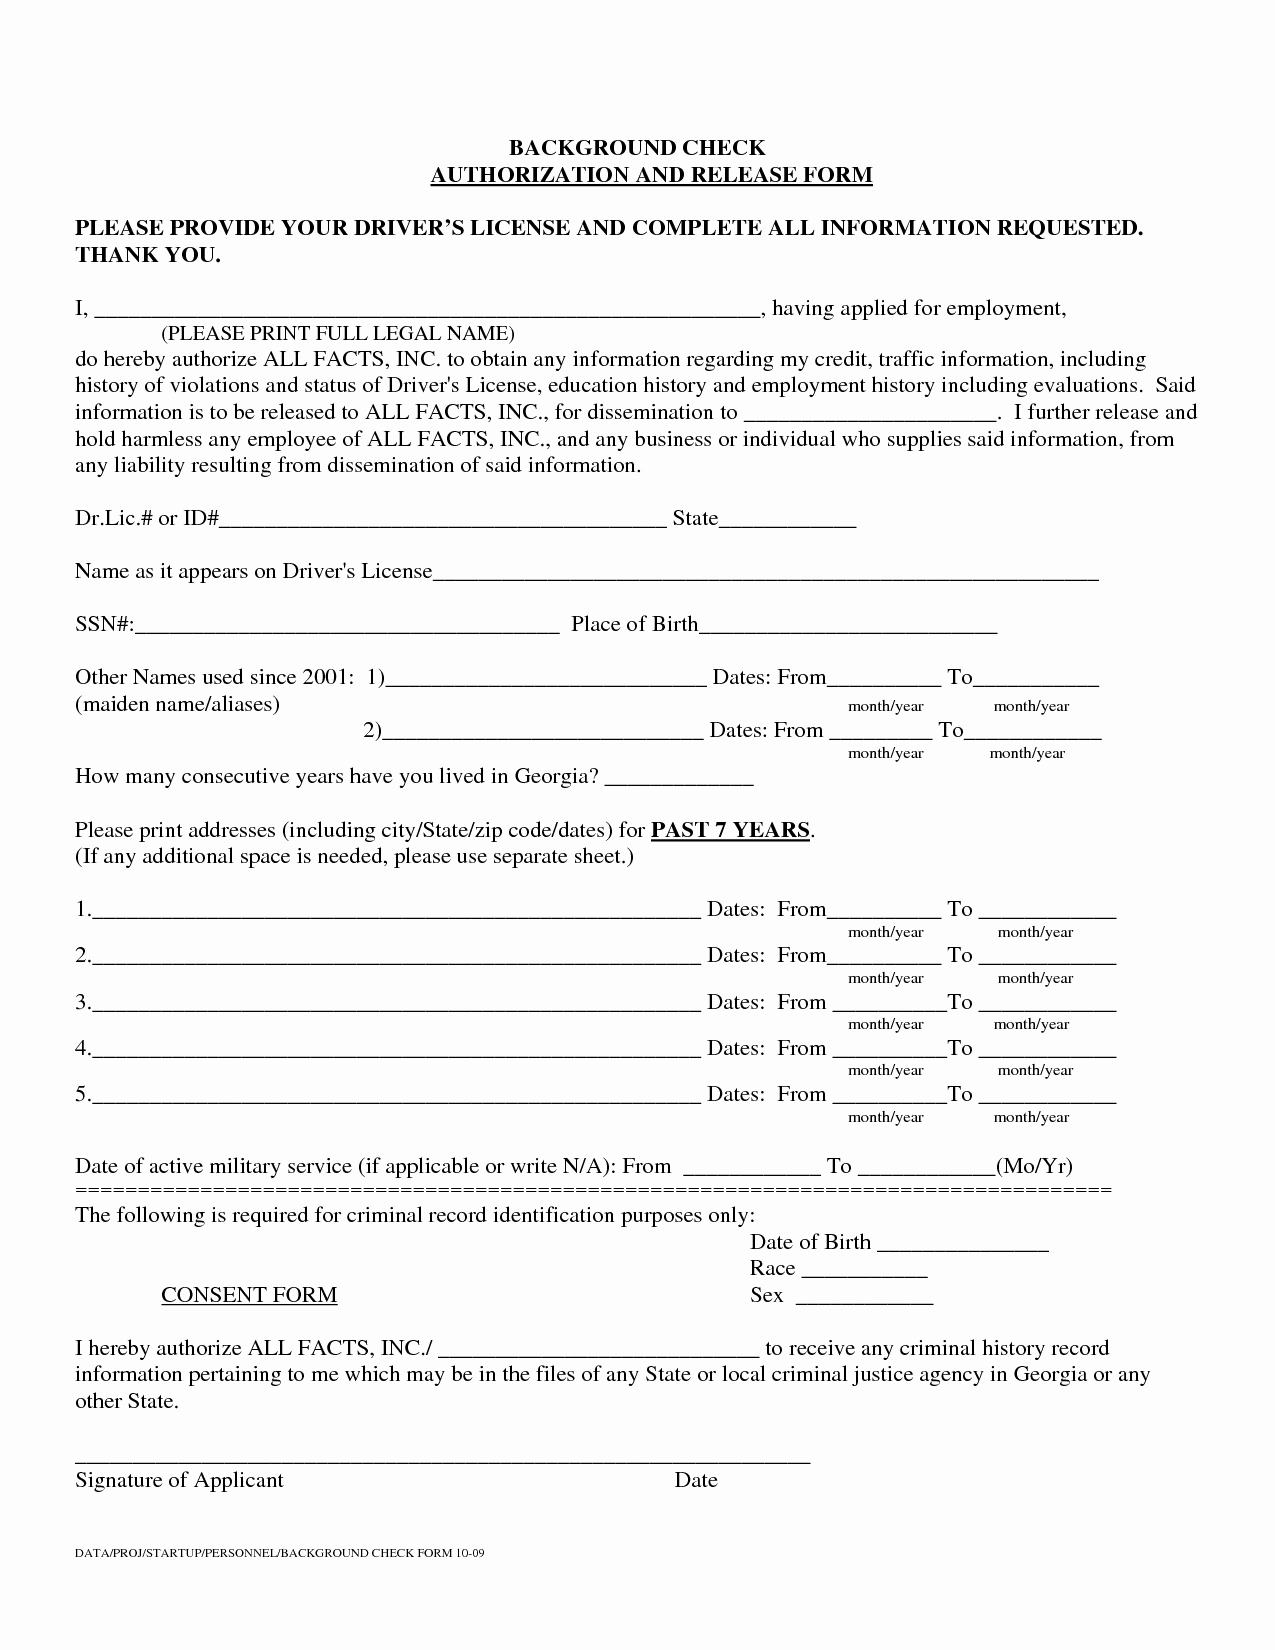 Background Check form Template New Authorization to Release Information Template